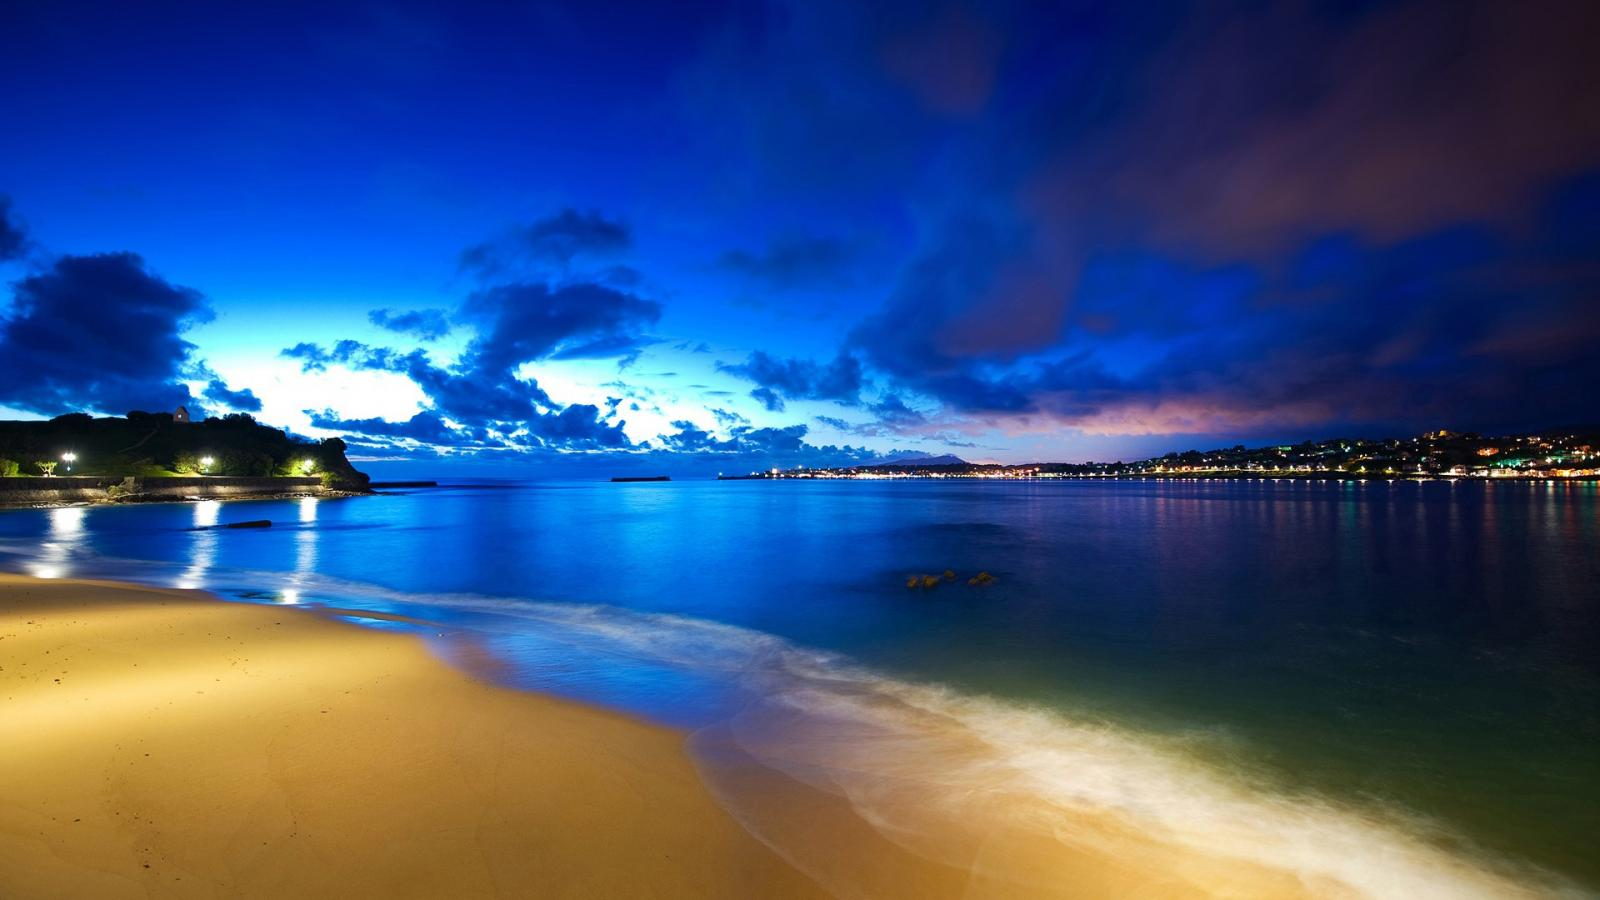 Night Beach Wallpaper Photographie 1600x900